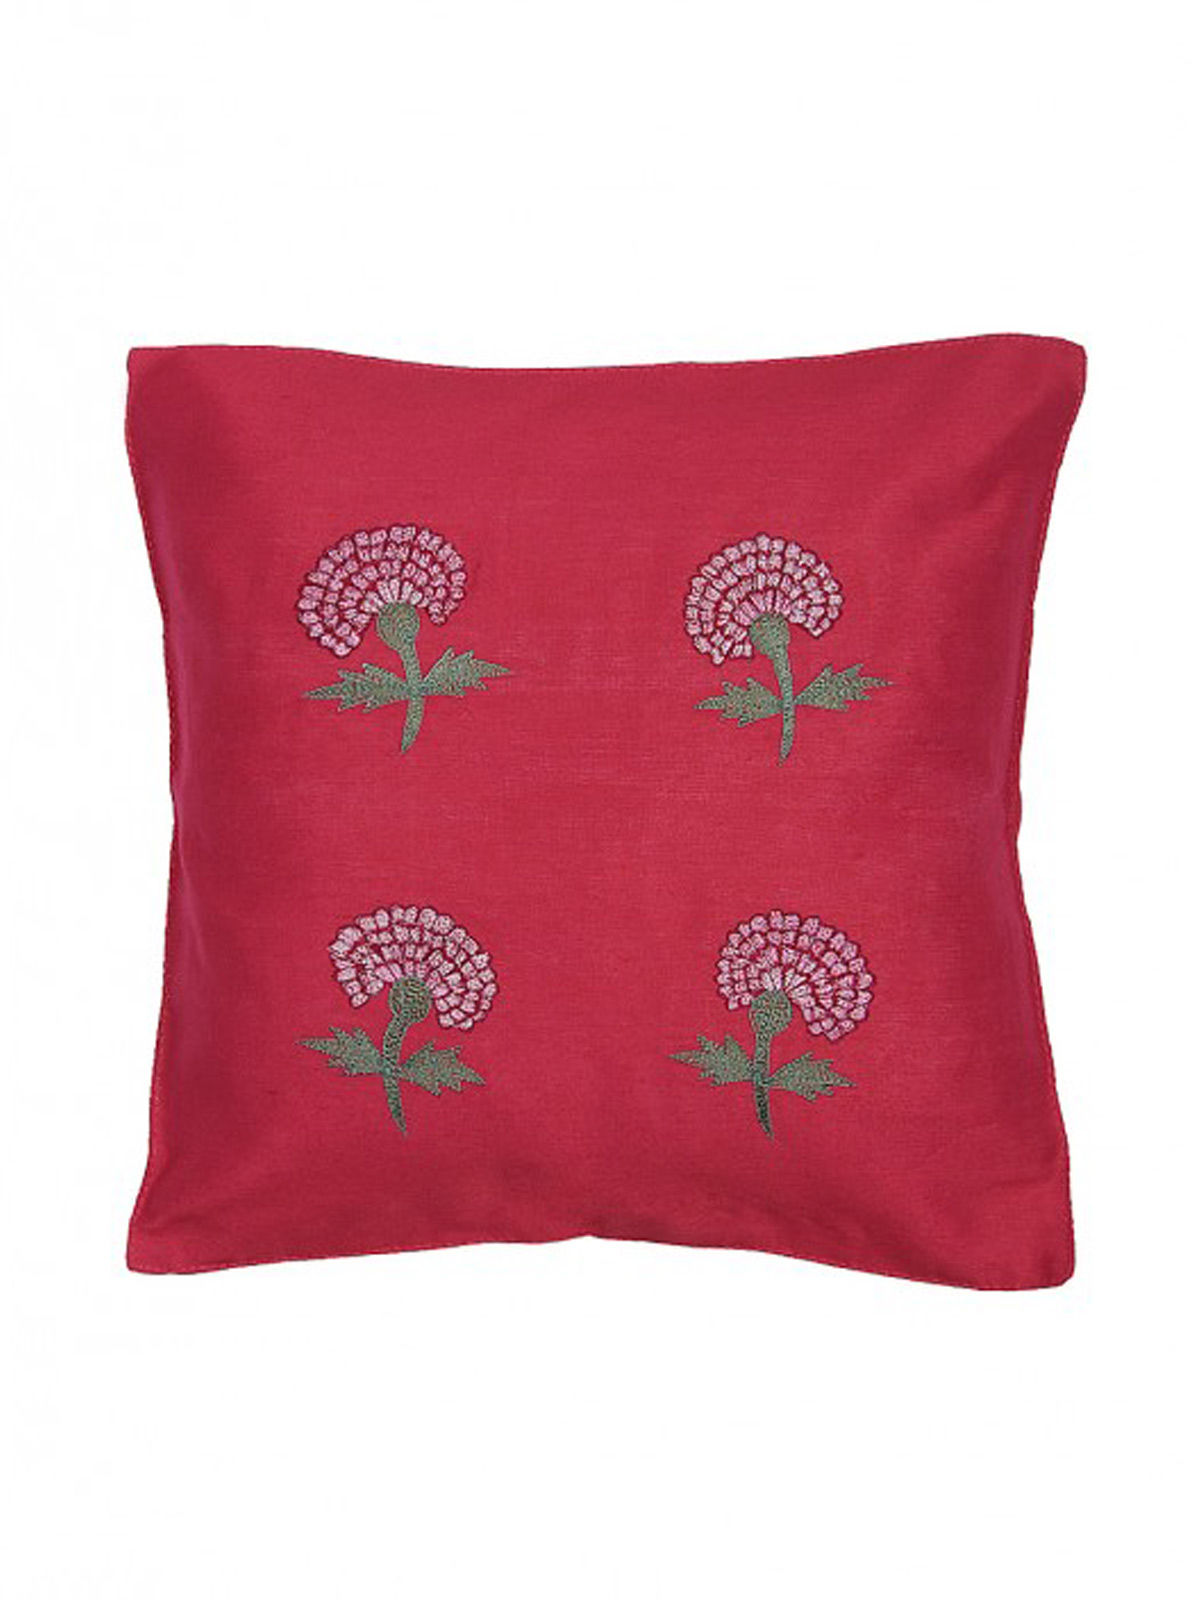 Red Embroidered Silk Cushion Cover with Marigold Motif